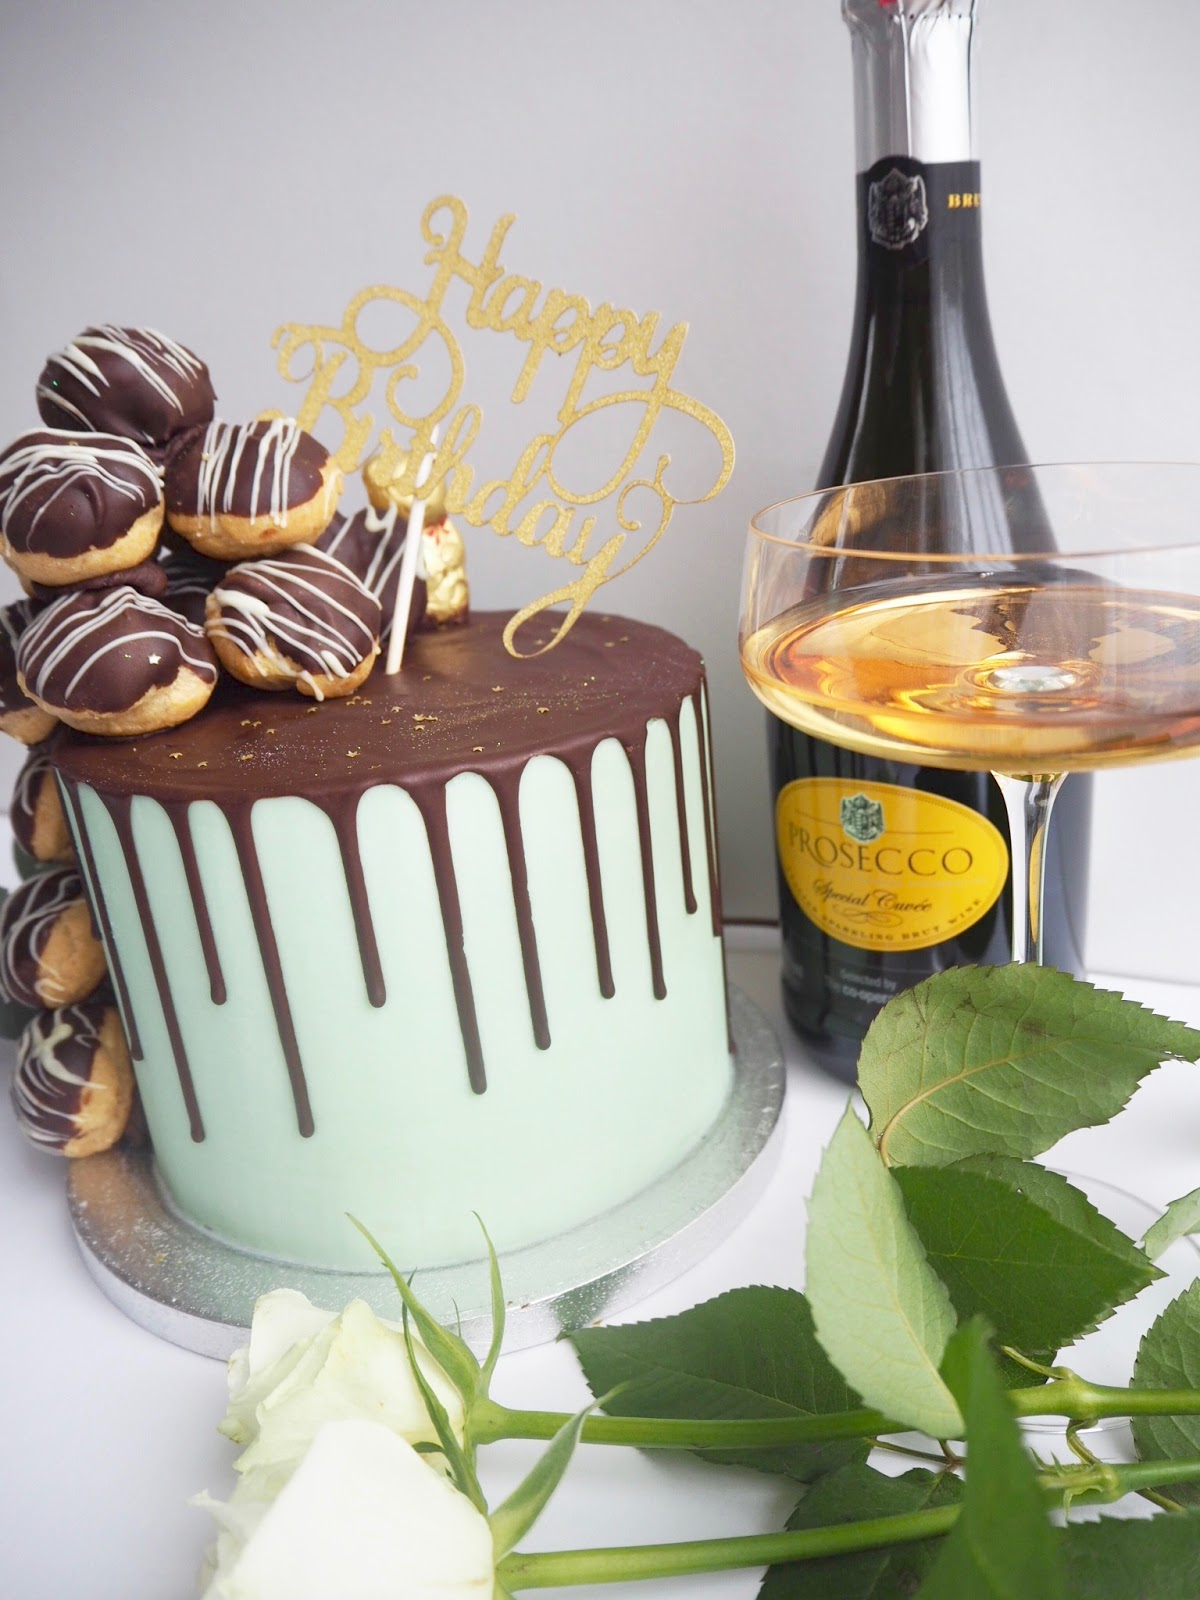 Profiterole Cake and Prosecco